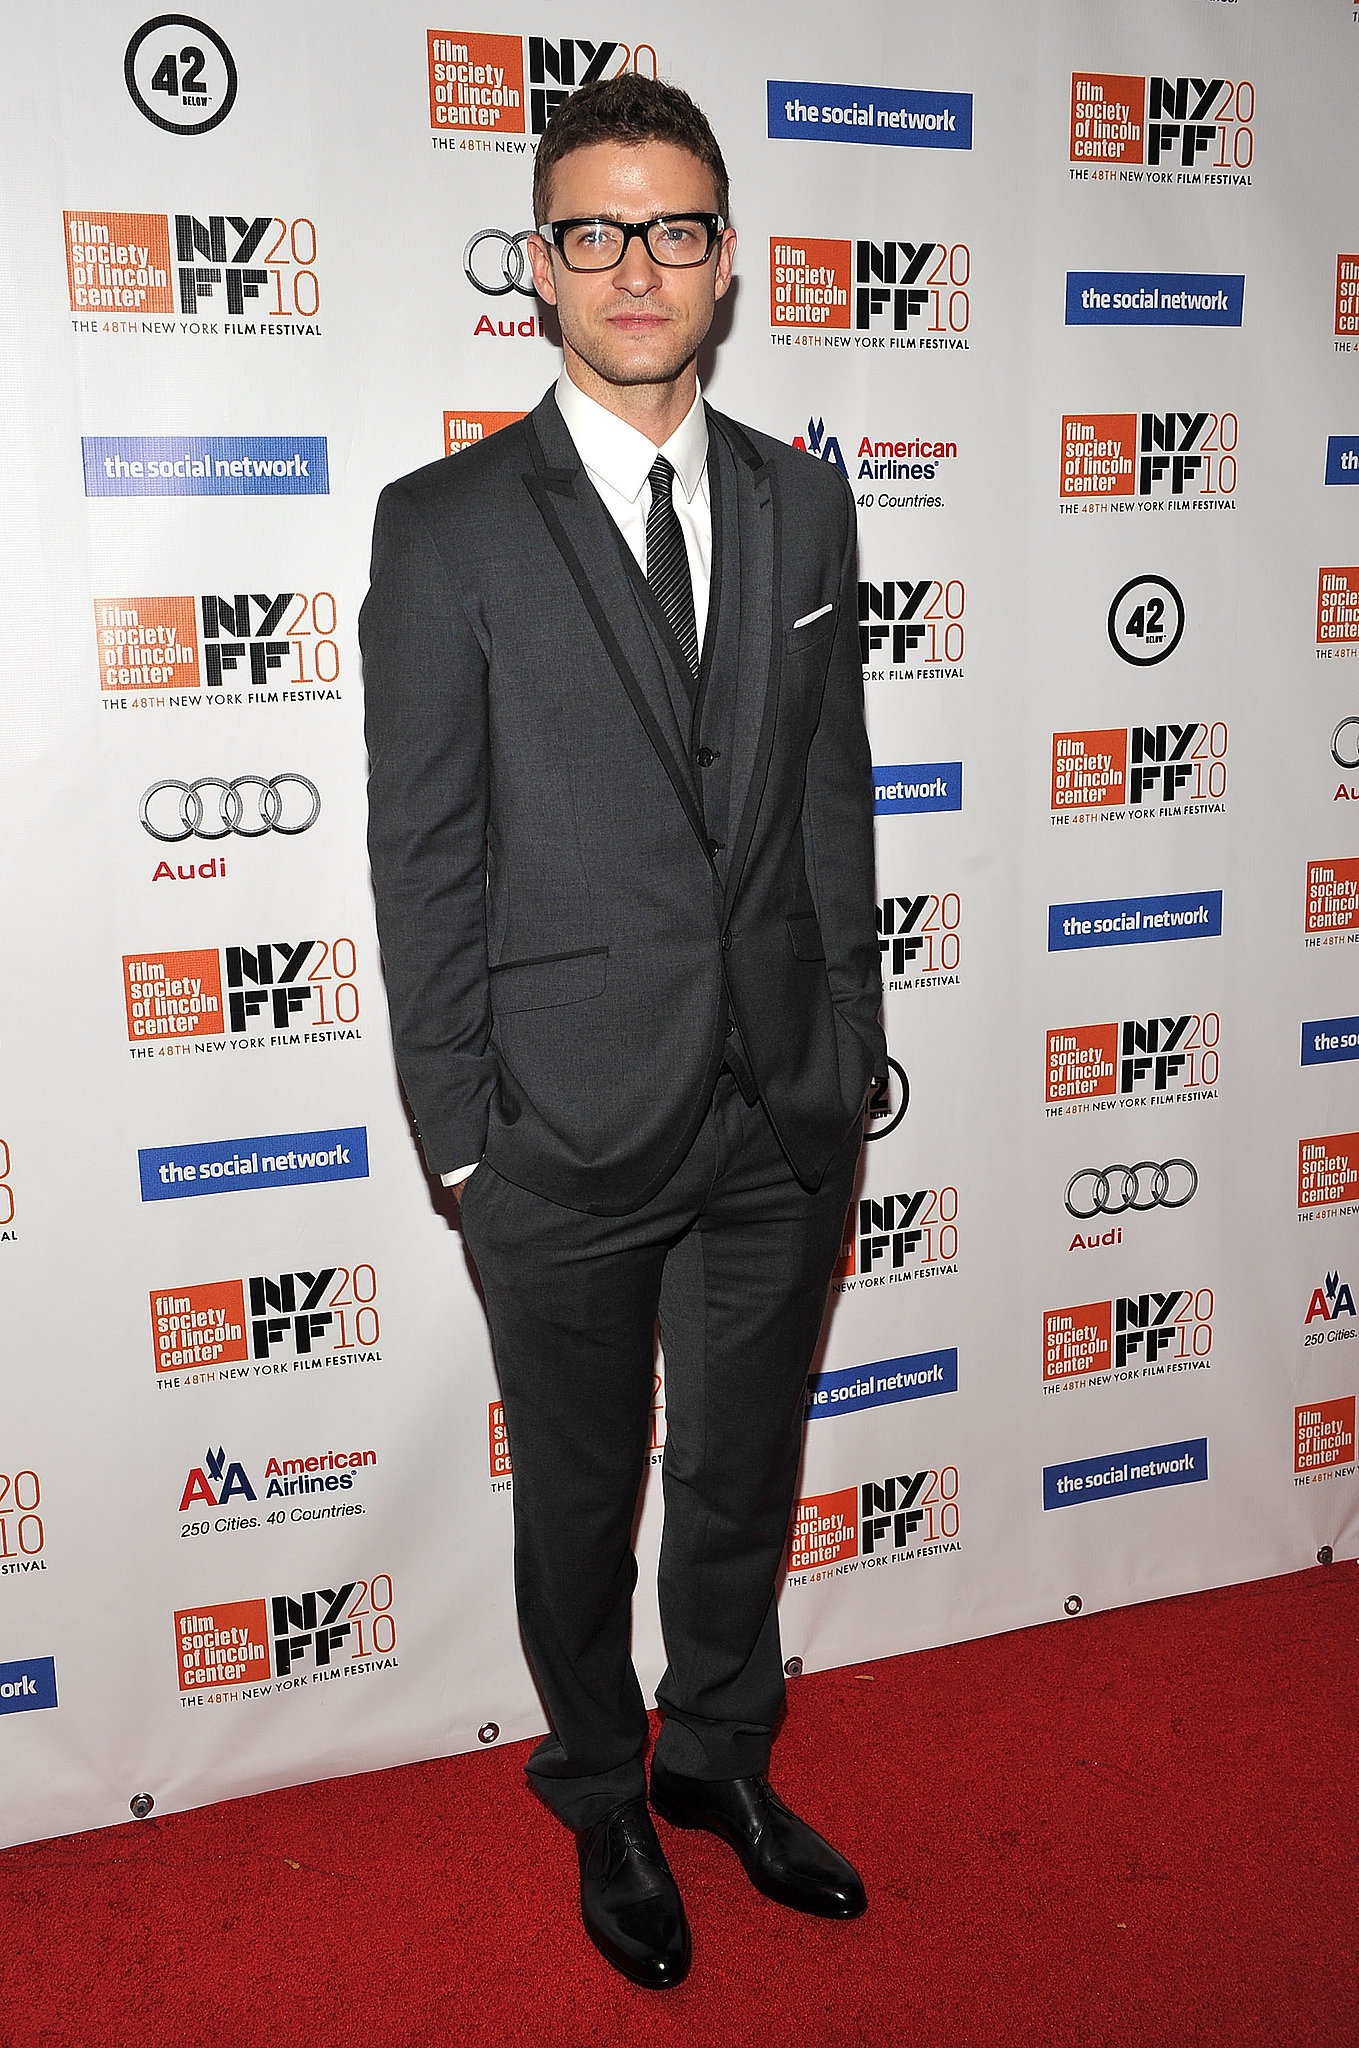 Justin paired his dapper look with thick-framed glasses at the New York Film Festival in 2010.